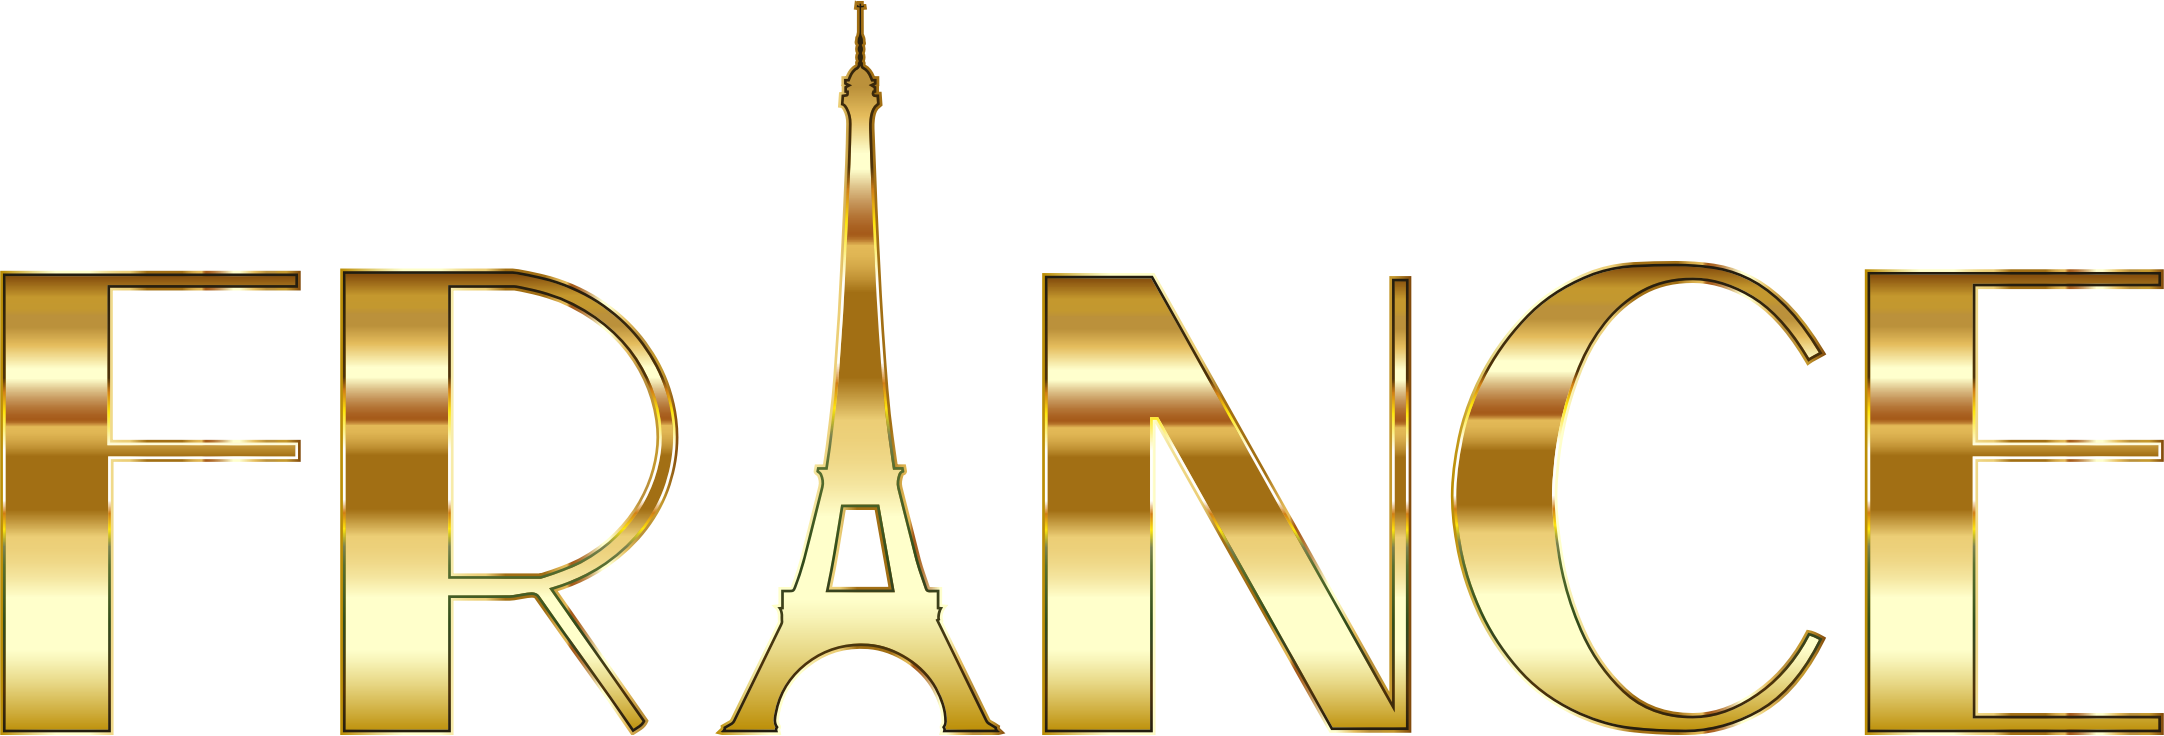 France Typography Gold by GDJ